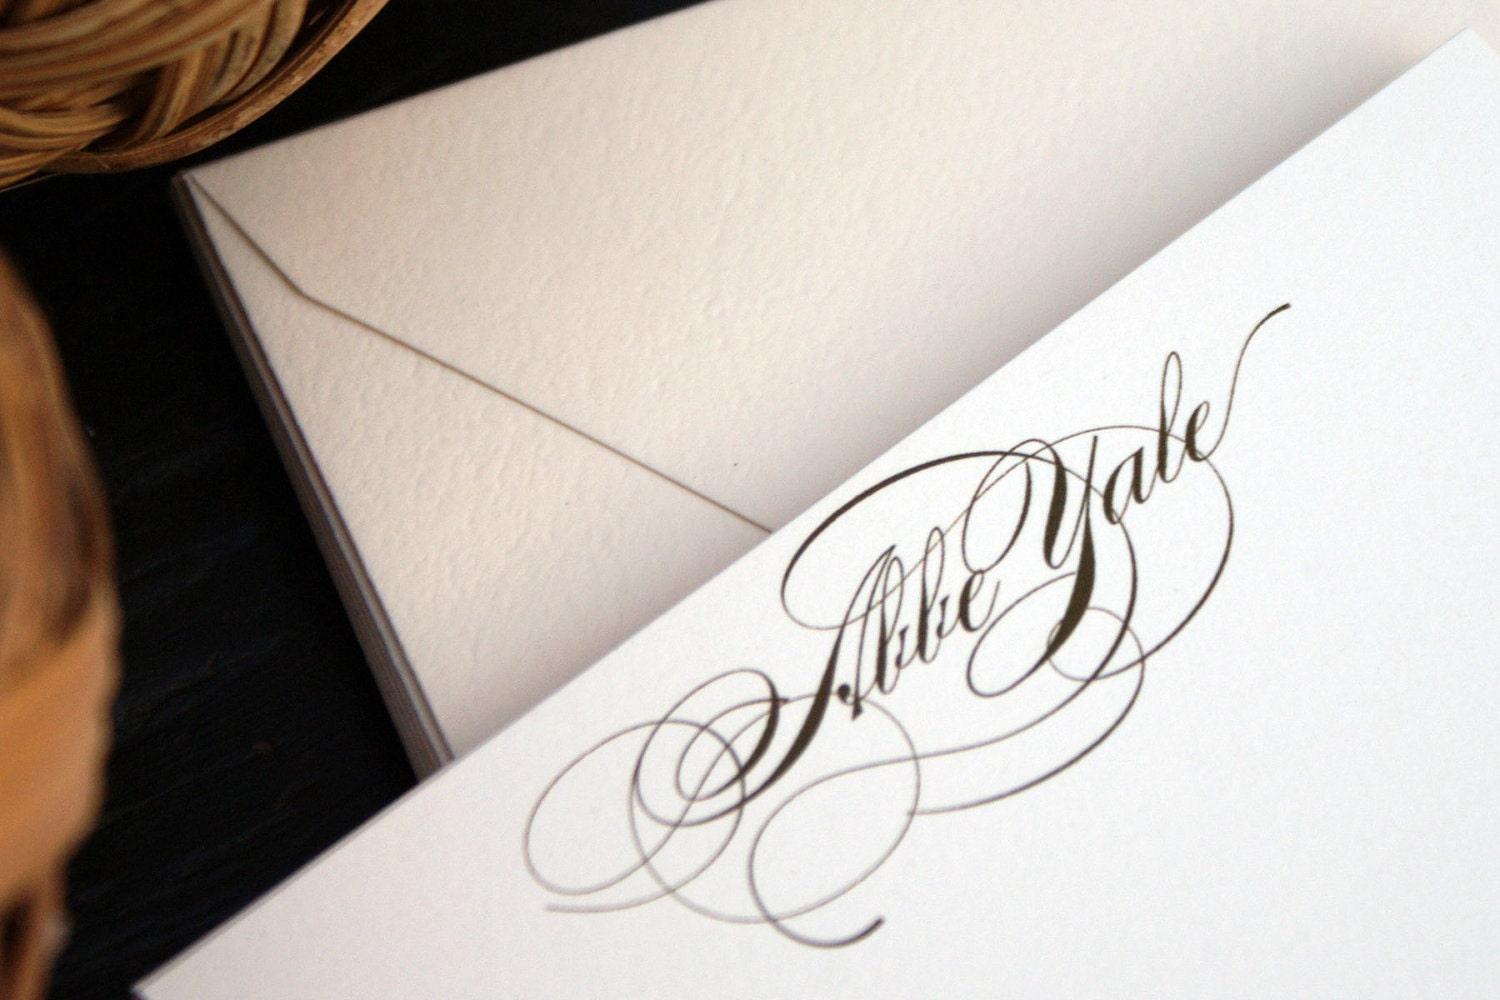 Abbe Personalized Script Flats - Elegant Custom Note Cards  - Set of 8